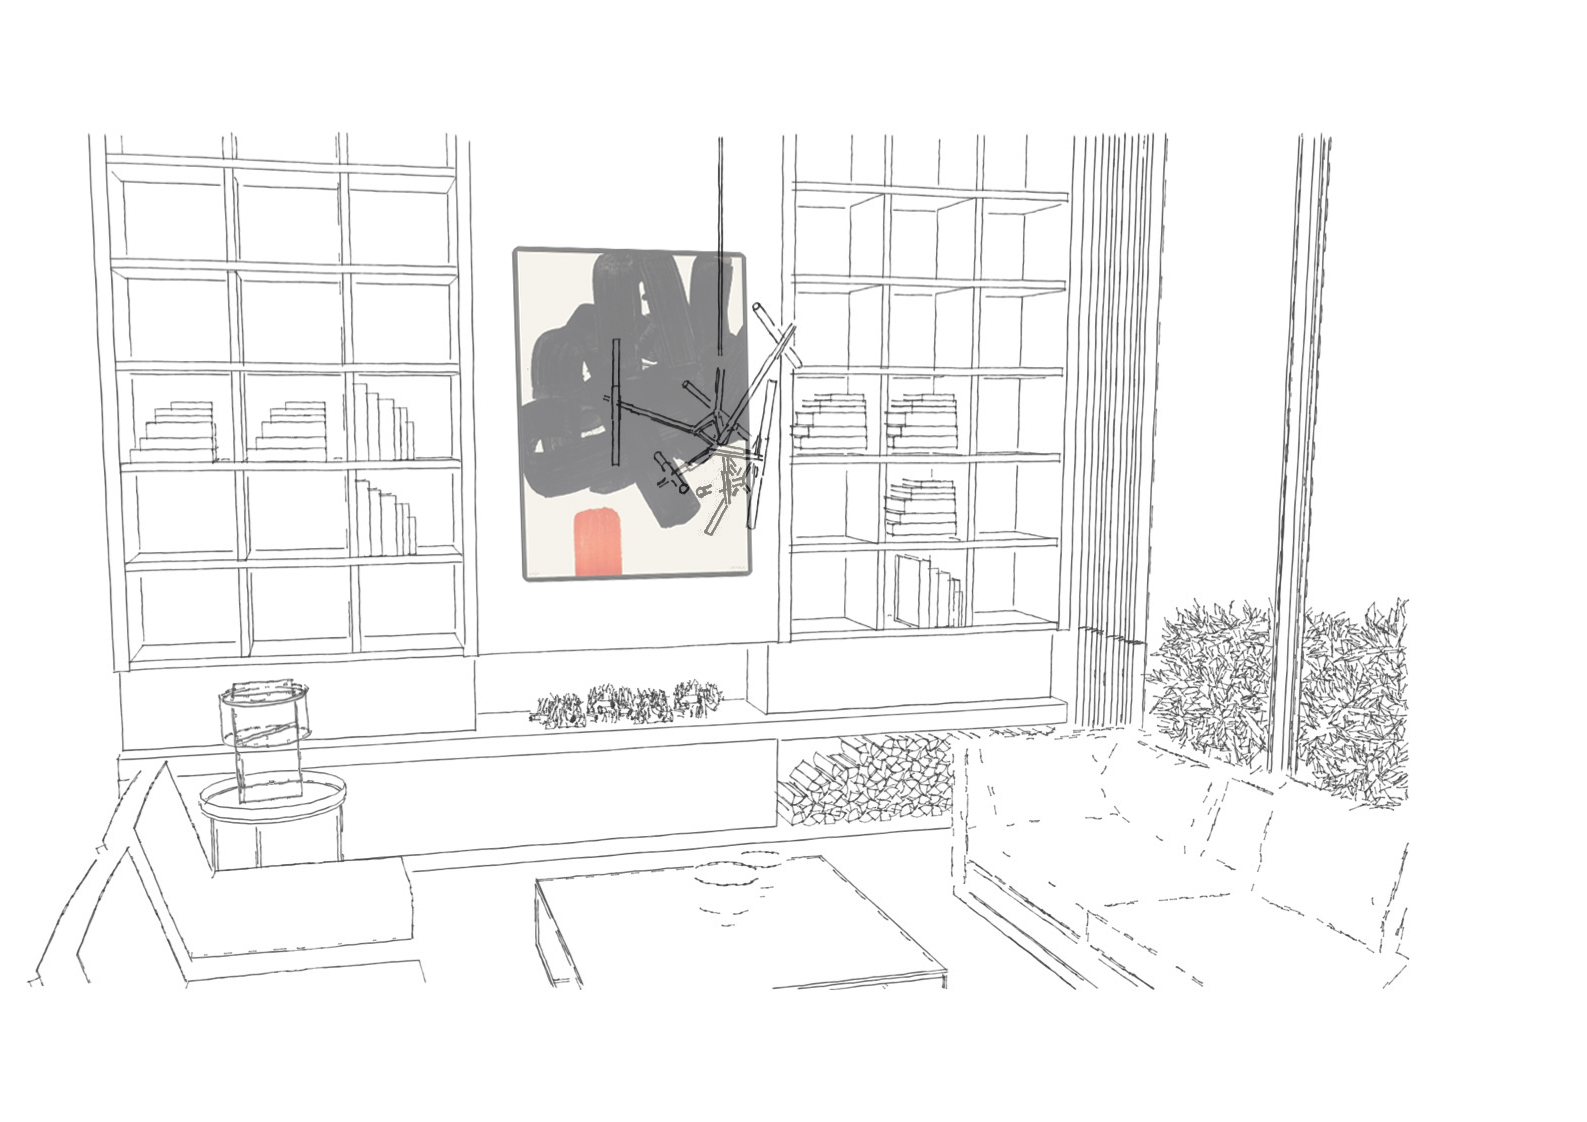 Concept image of a living room